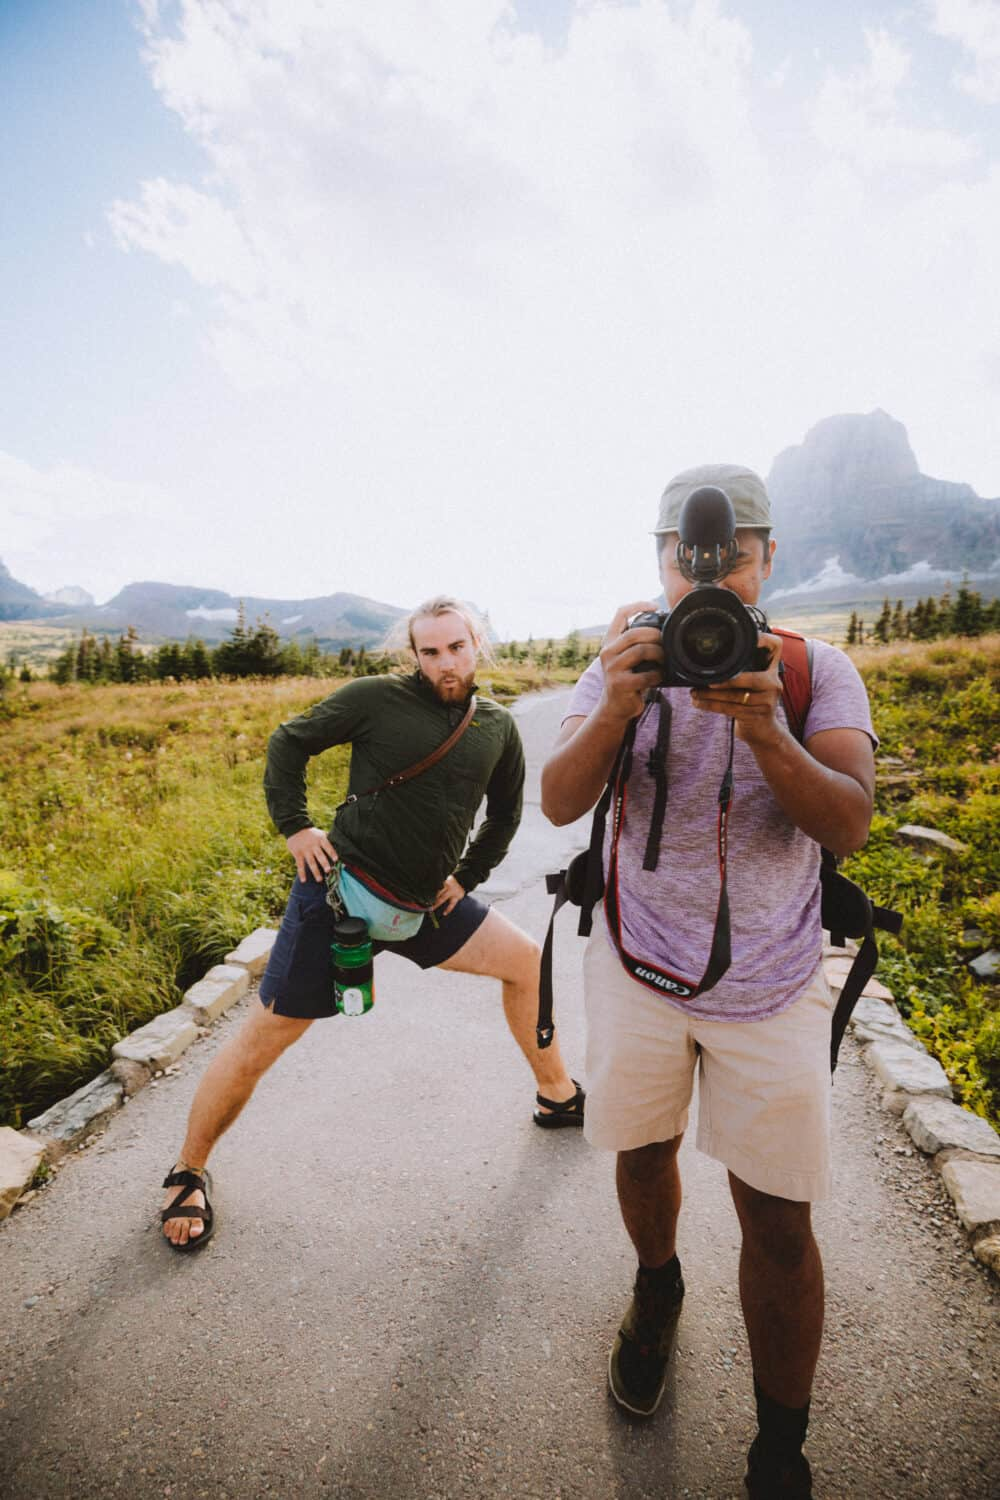 Joseph and Berty, taking photos on hiking trail